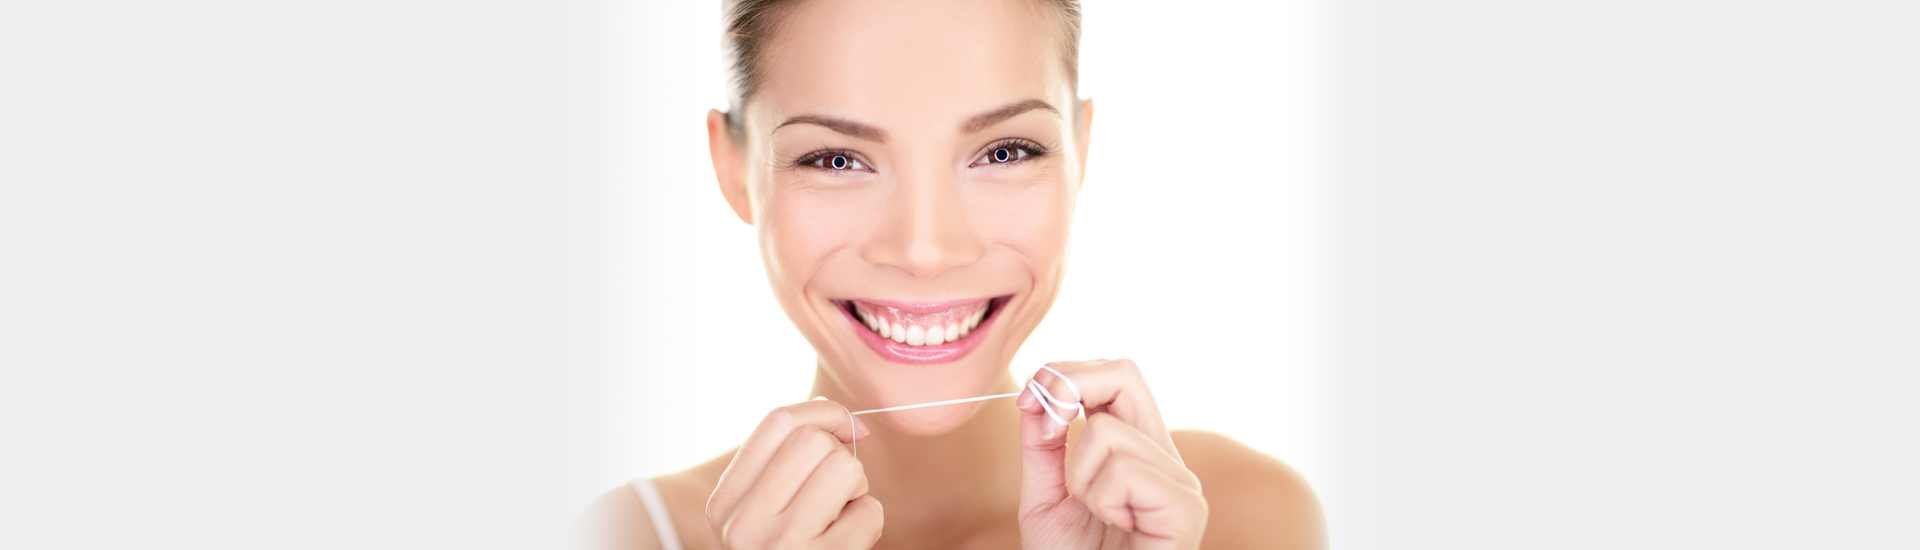 Is Flossing Your Teeth Really Important?